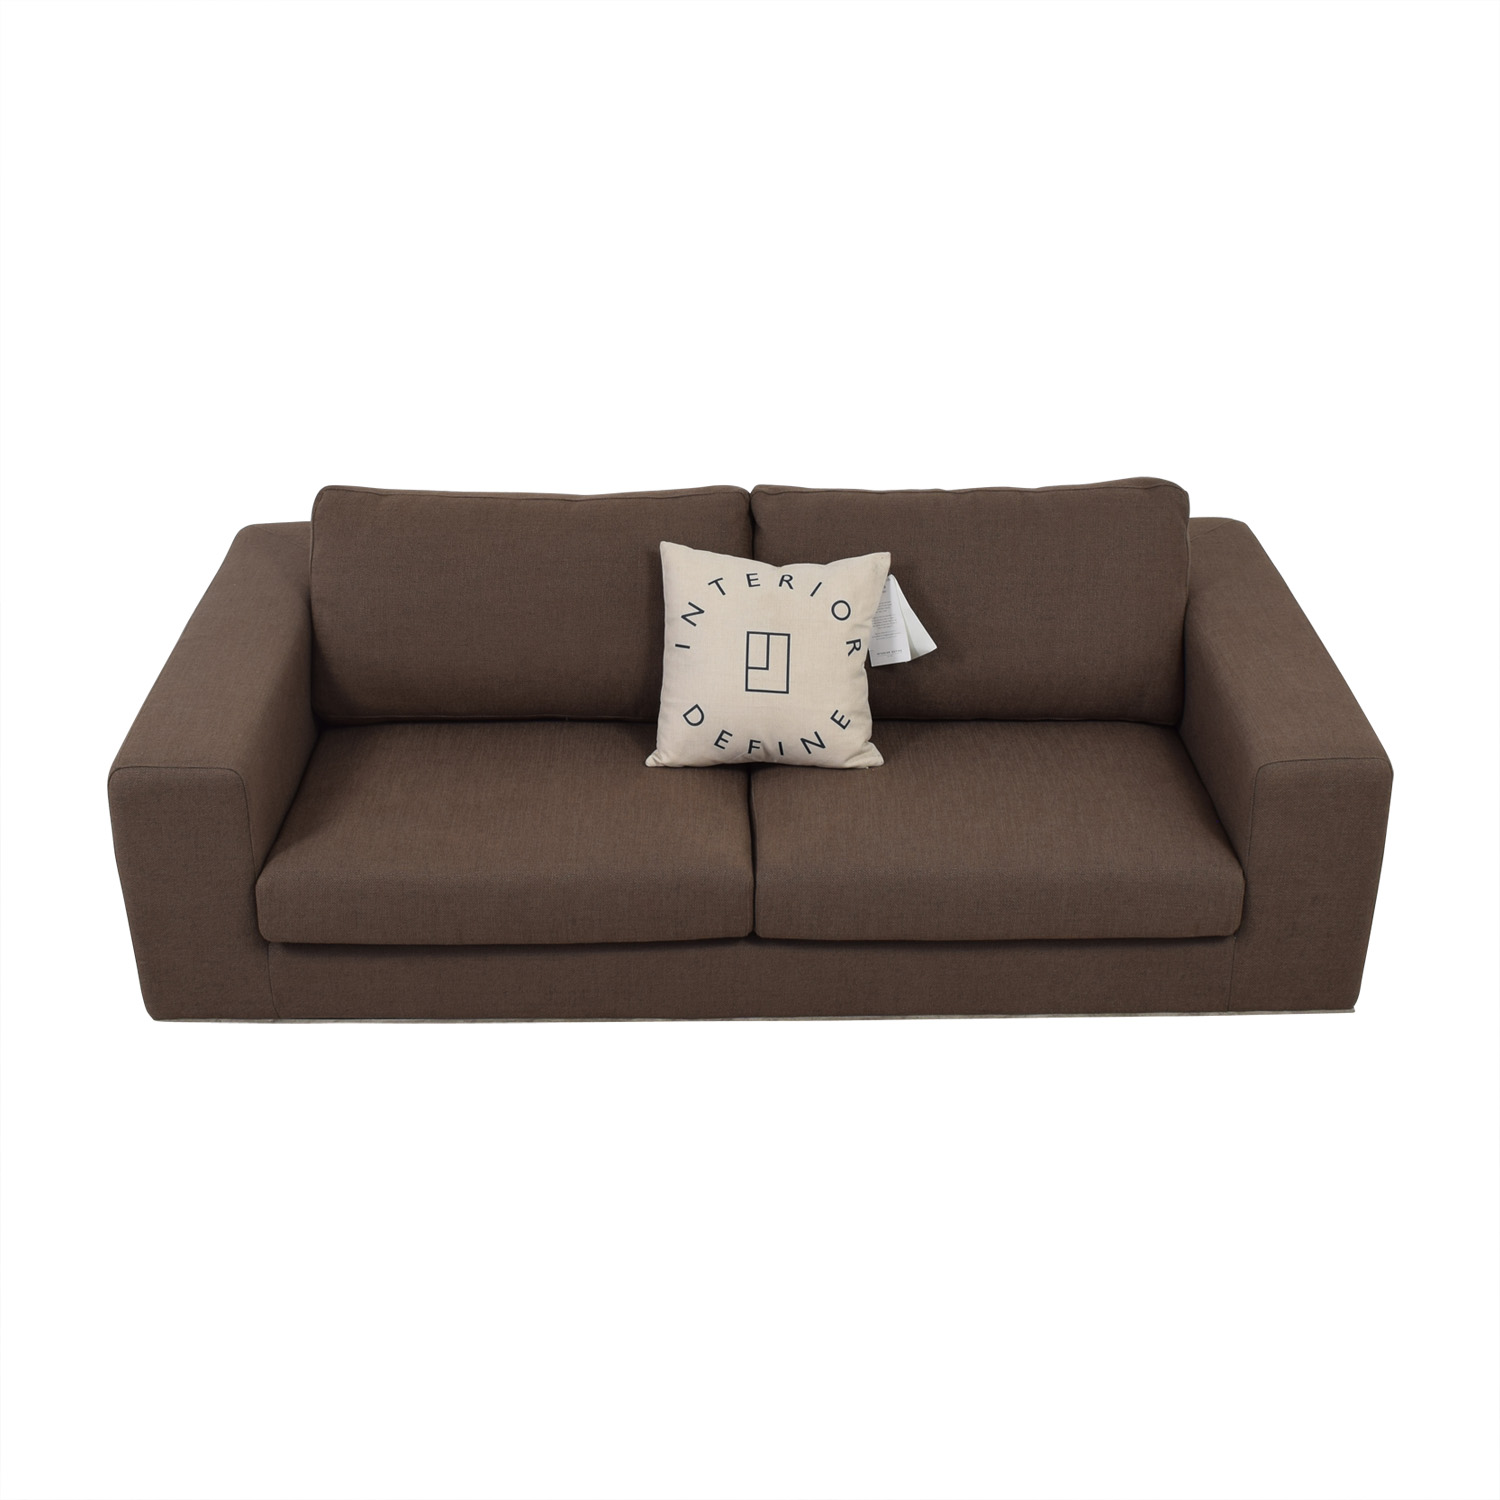 Walters Brown Two-Cushion Sofa nyc